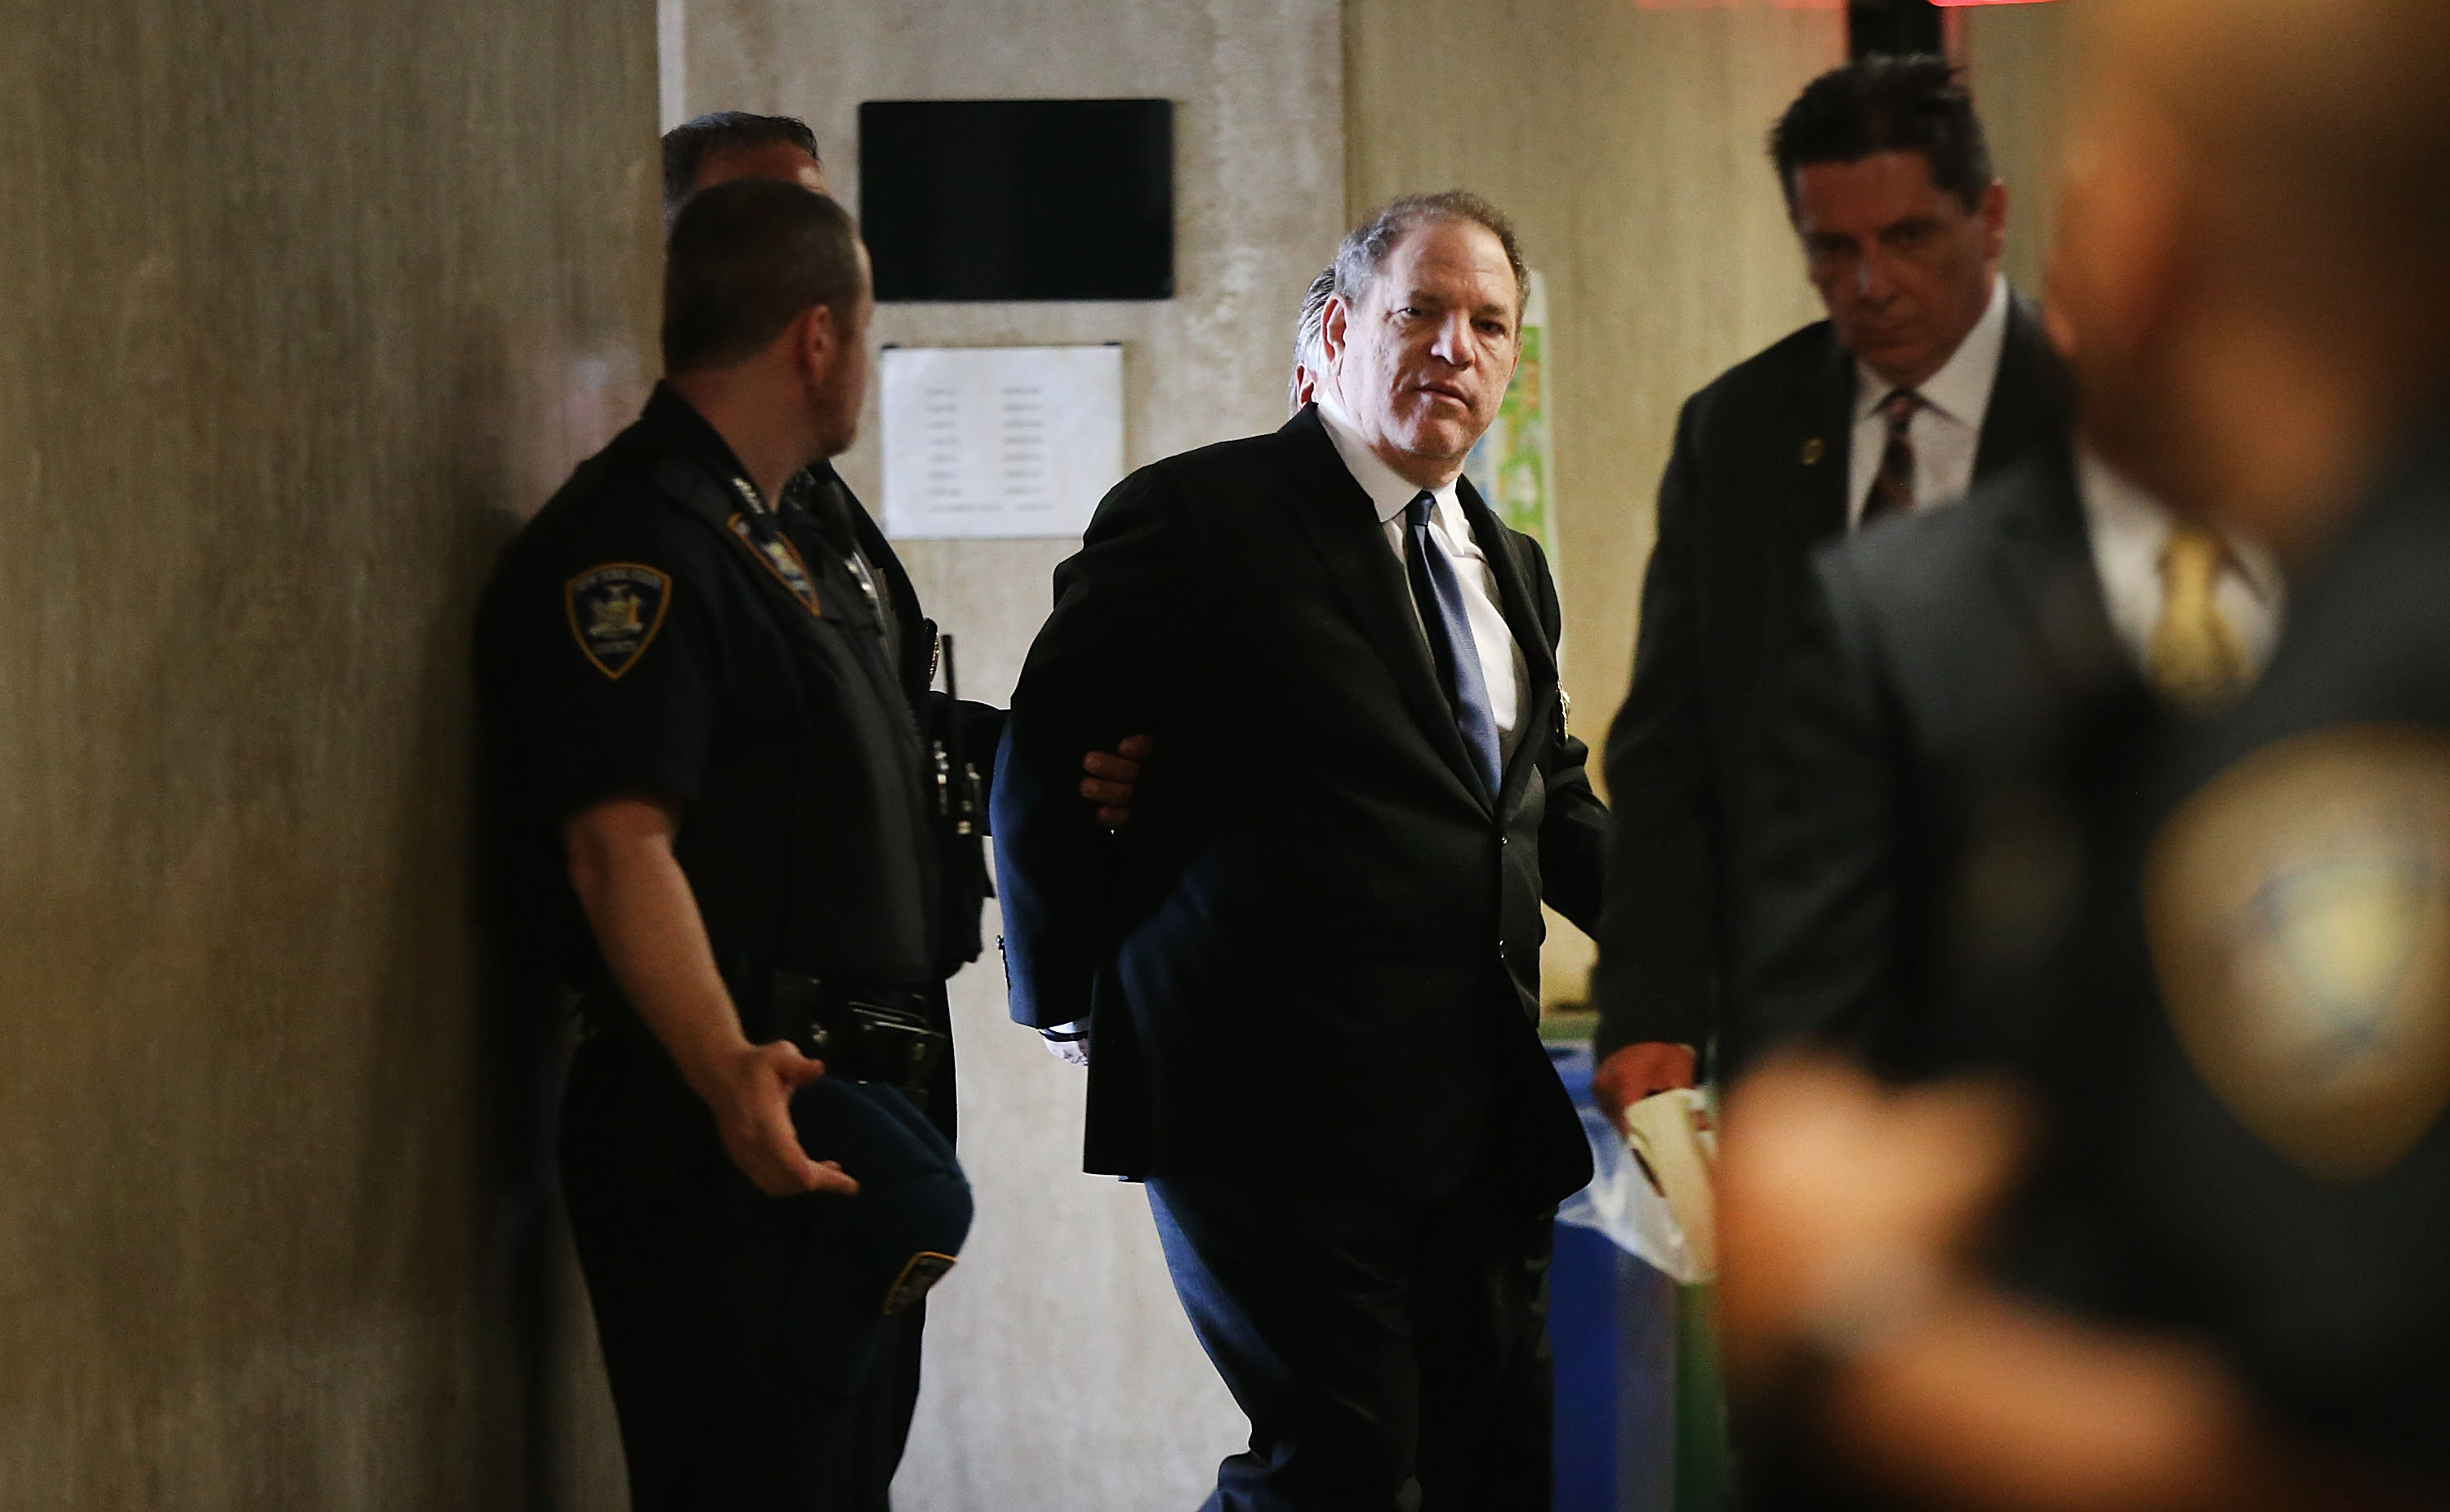 Harvey Weinstein ingresa esposado a la Corte Suprema de Nueva York el 9 de julio pasado (Spencer Platt/Getty Images/AFP)